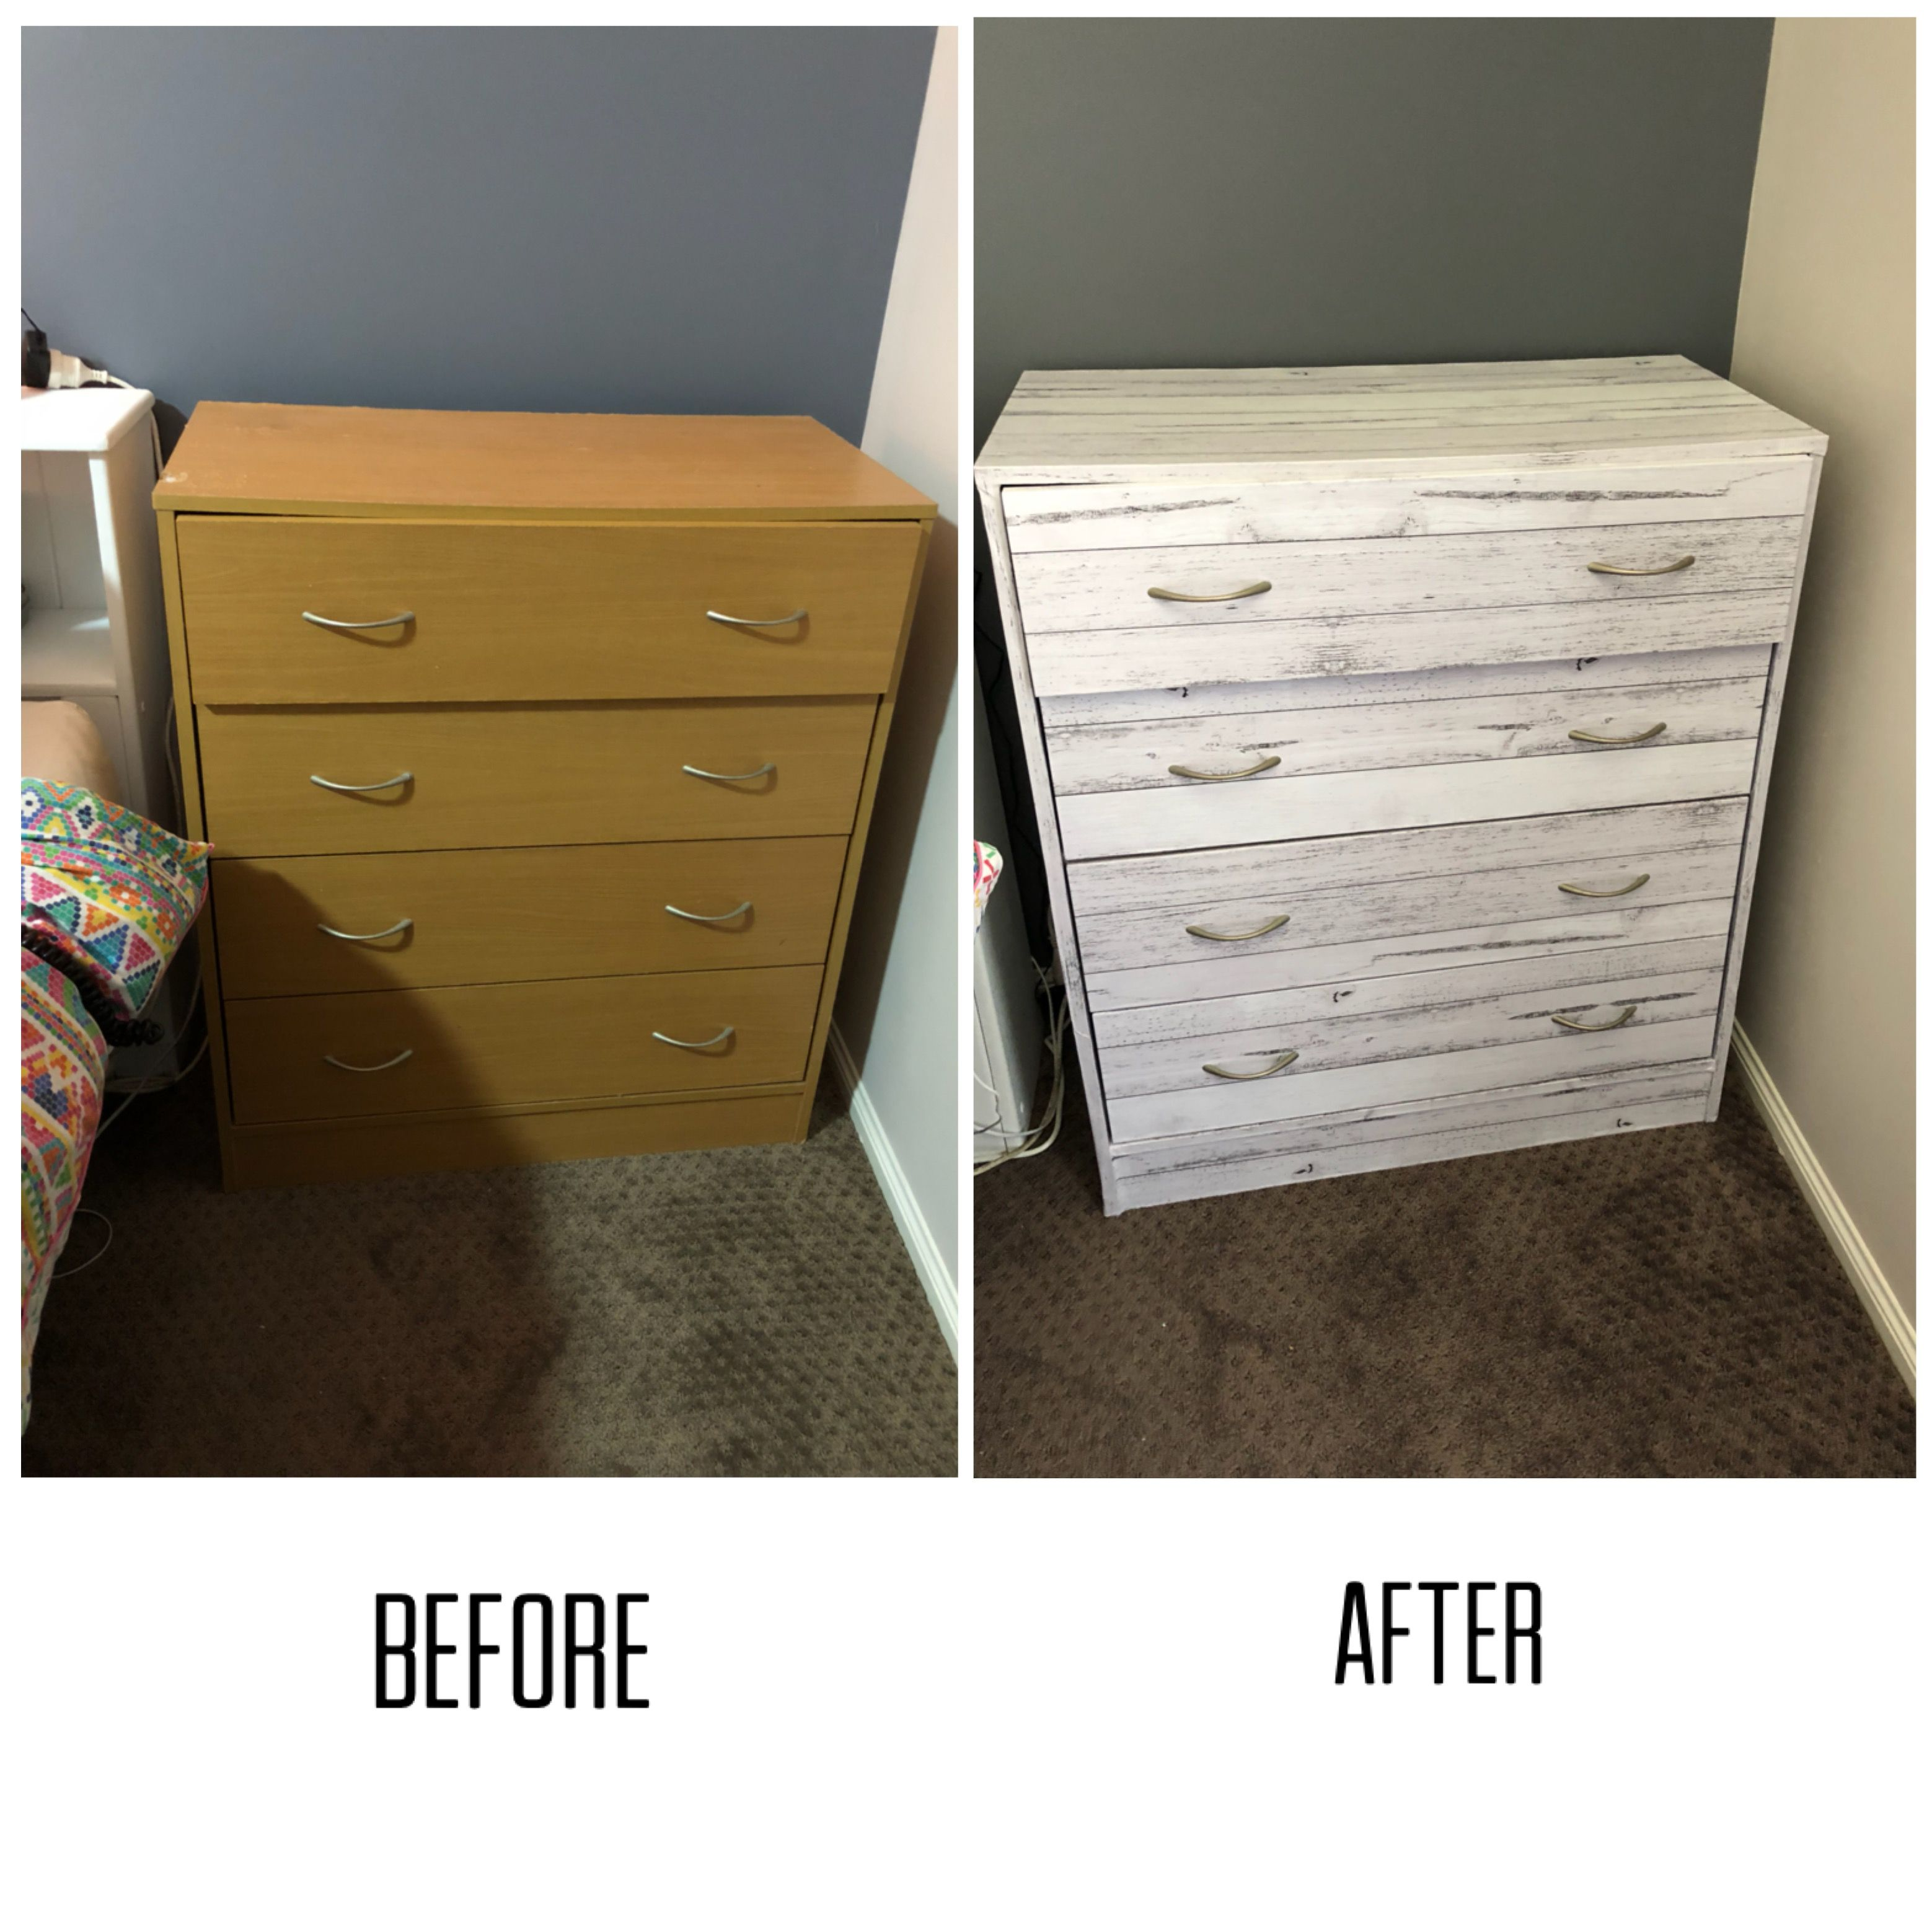 Vinyl Wrapping Old Chest Of Drawers Purchased Vinyl Wrap From Kmart For 3 A Roll Used 2 Rolls Was Ea Vinyl Wrap Furniture Home Decor Hacks Chest Of Drawers